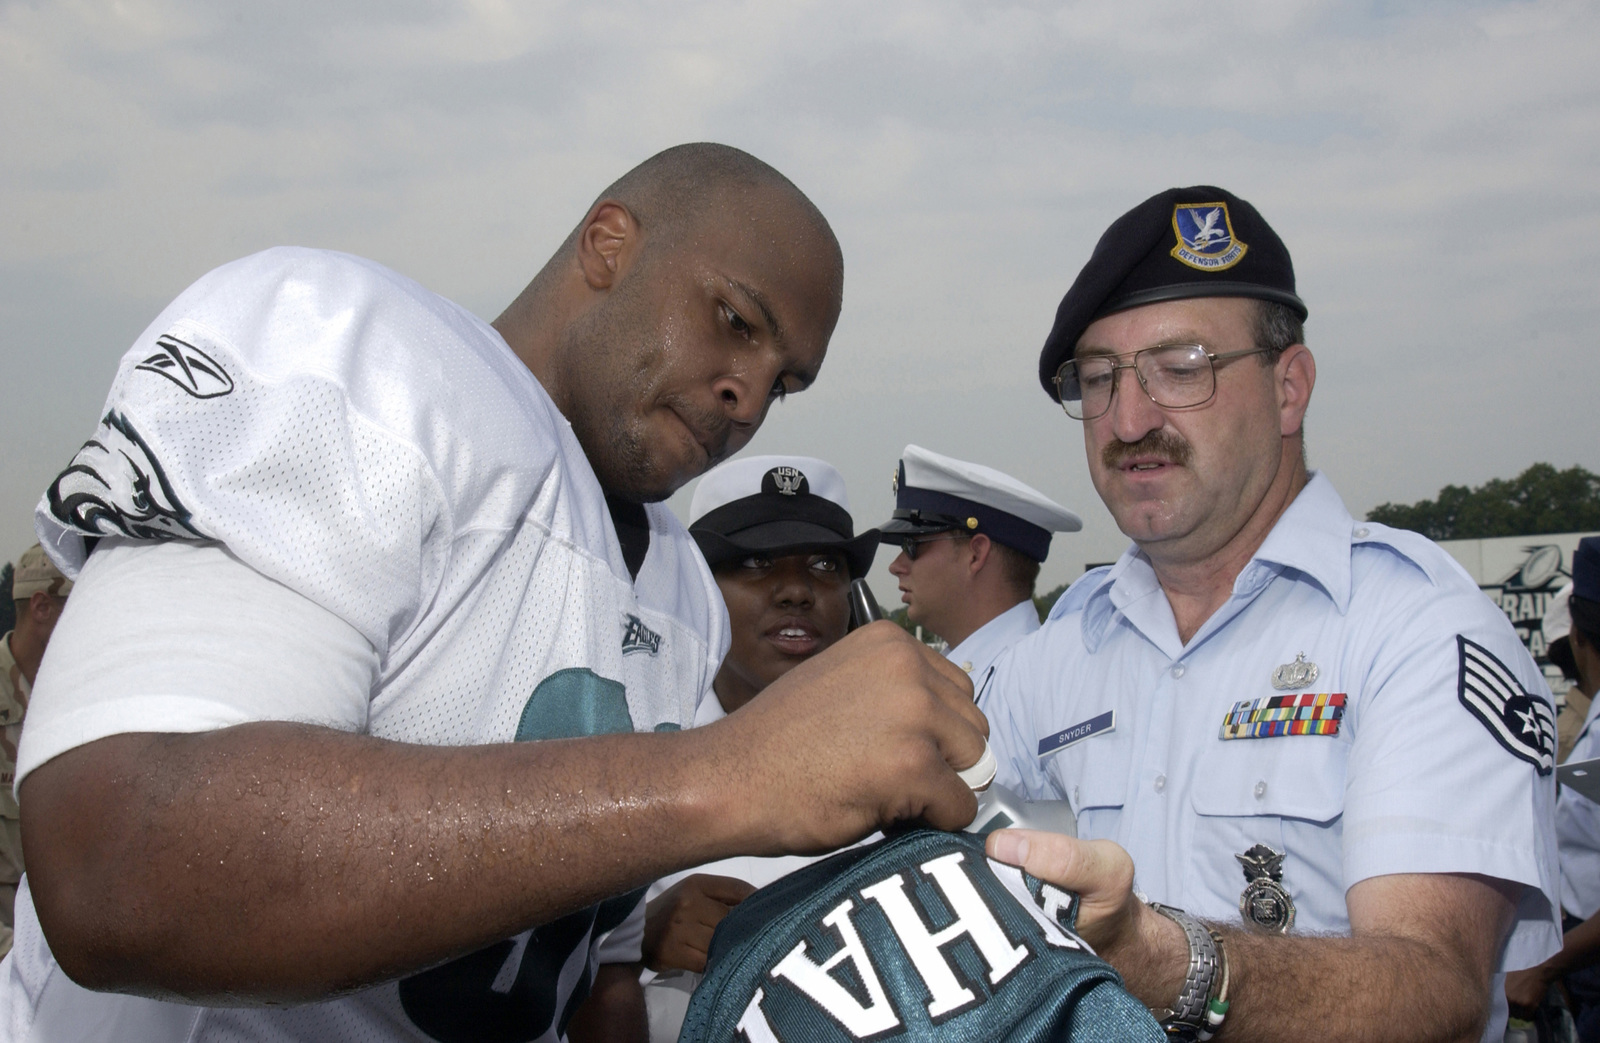 huge discount a003f e2211 Philadelphia Eagles Defense Tackle Corey Simon autographs an ...